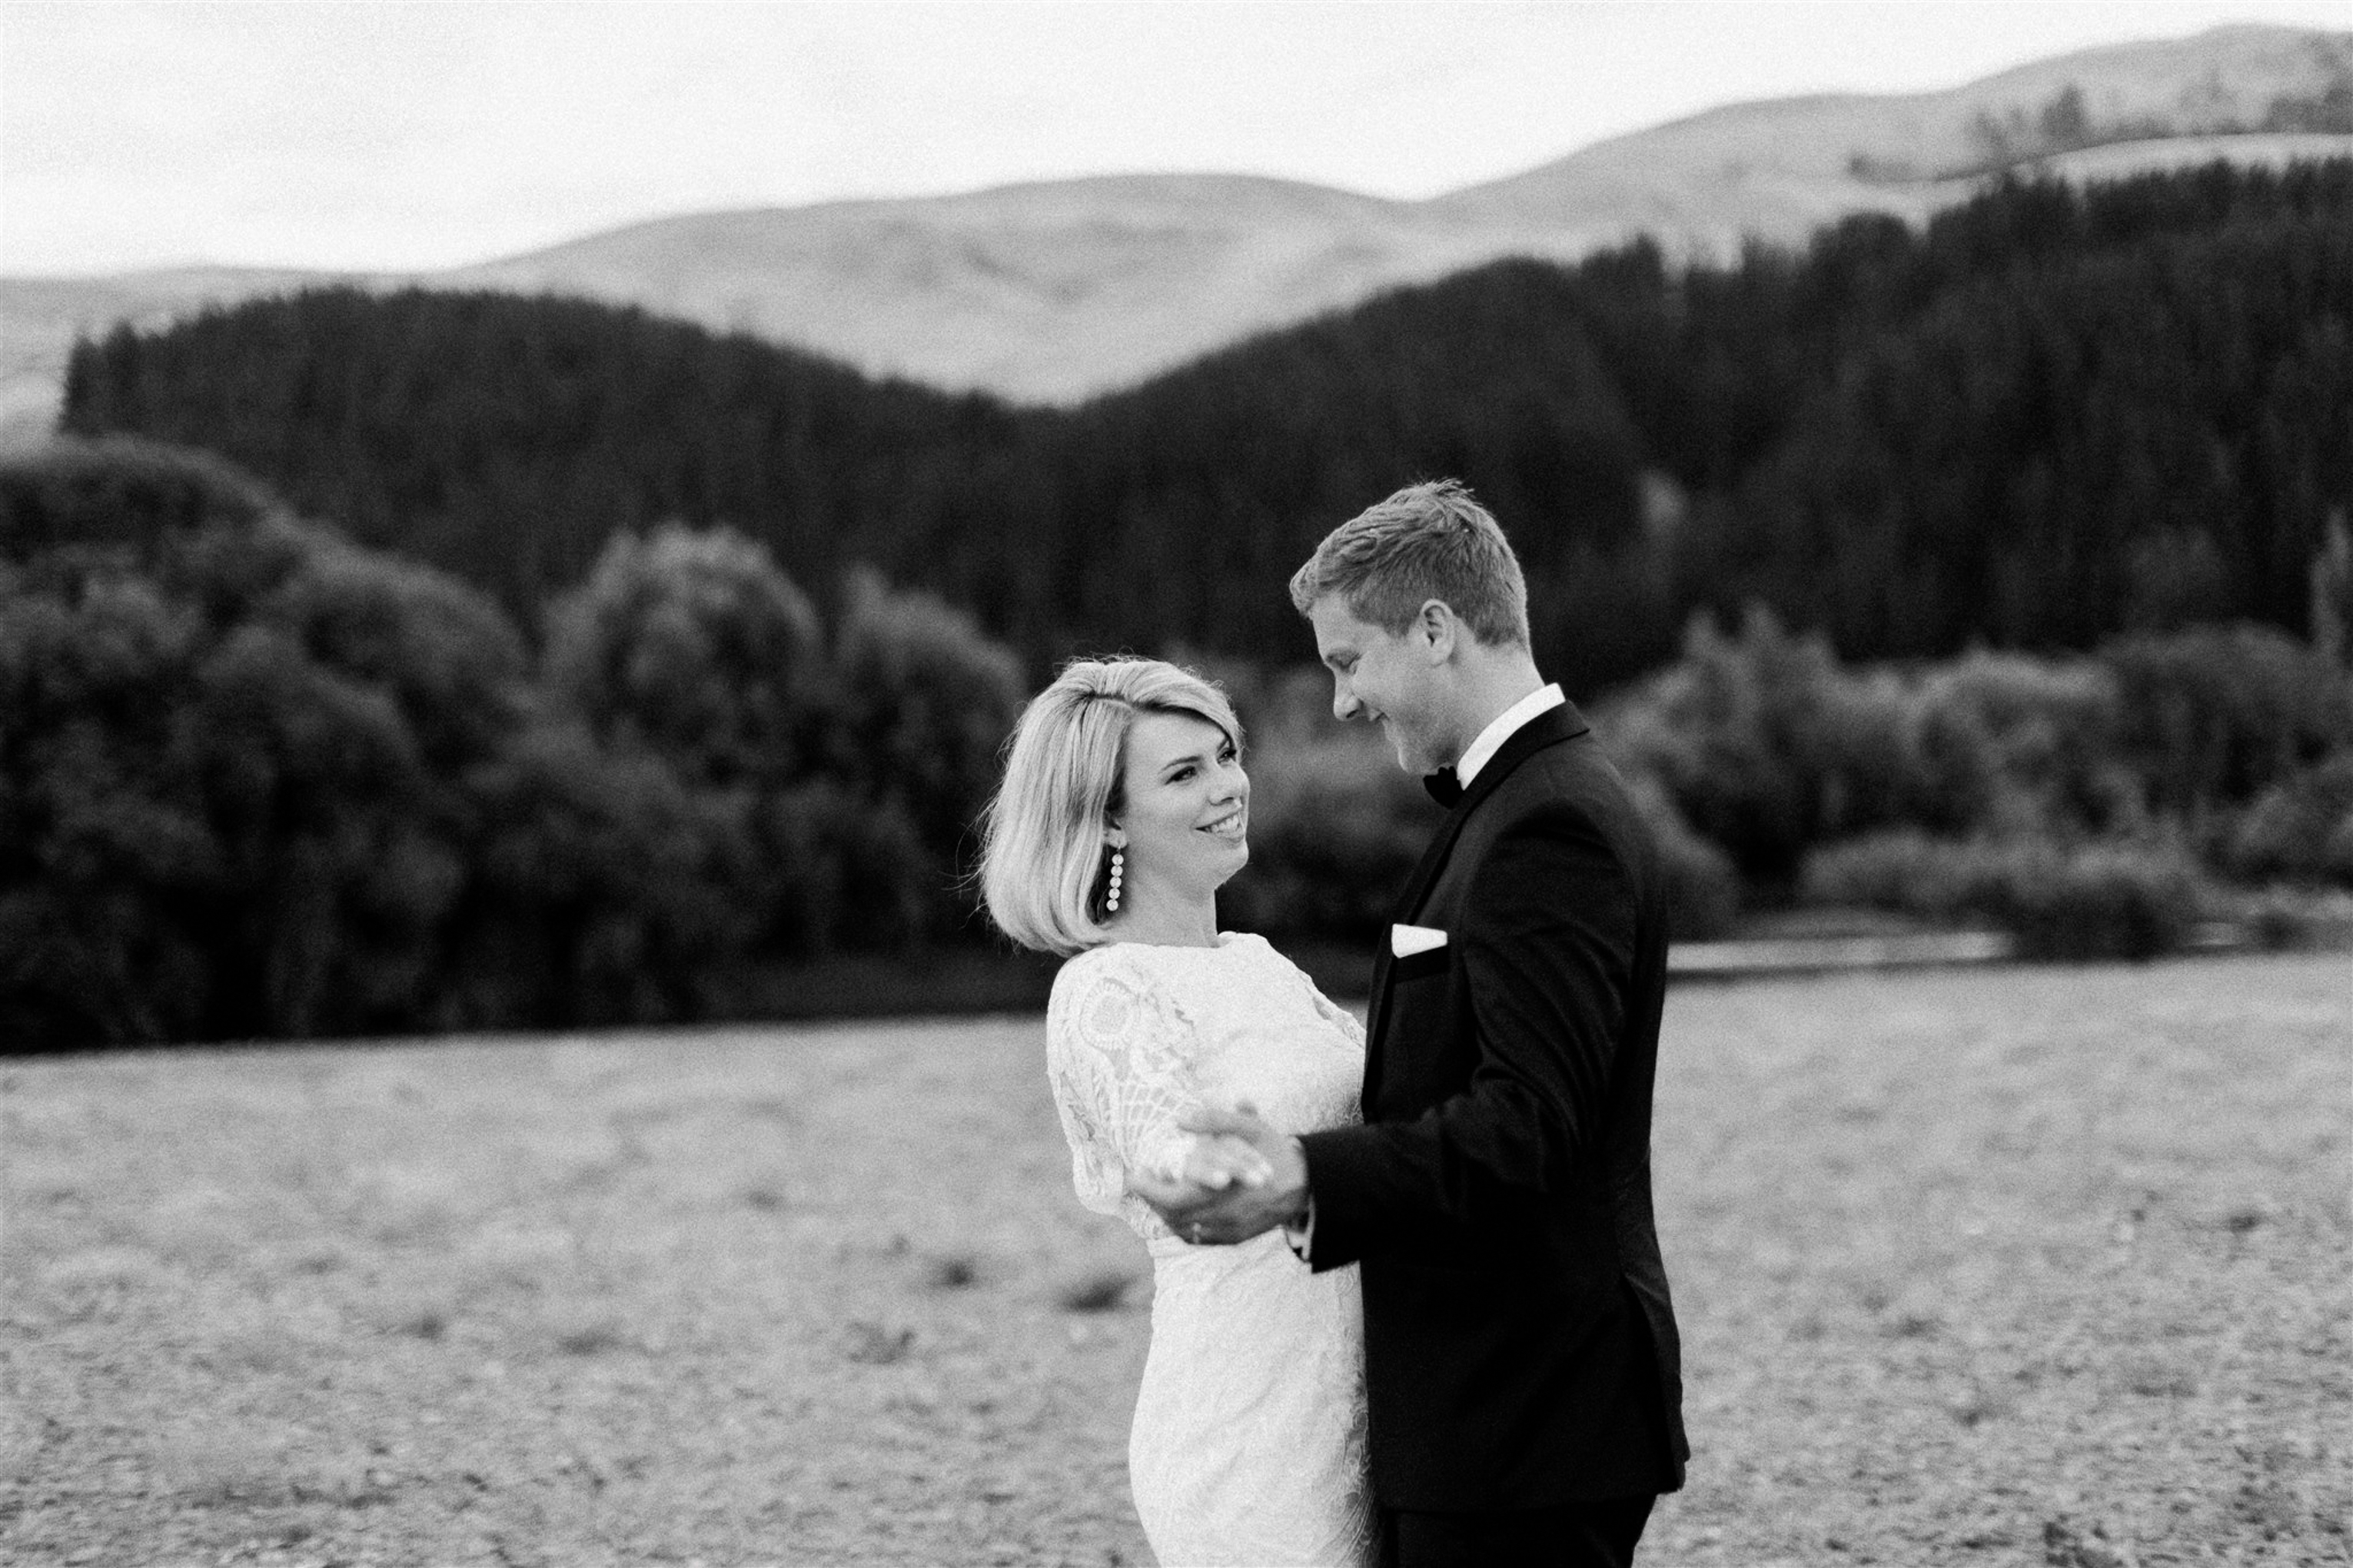 Categories: Weddings-Laura & Andrew - Photography by Melissa Mills